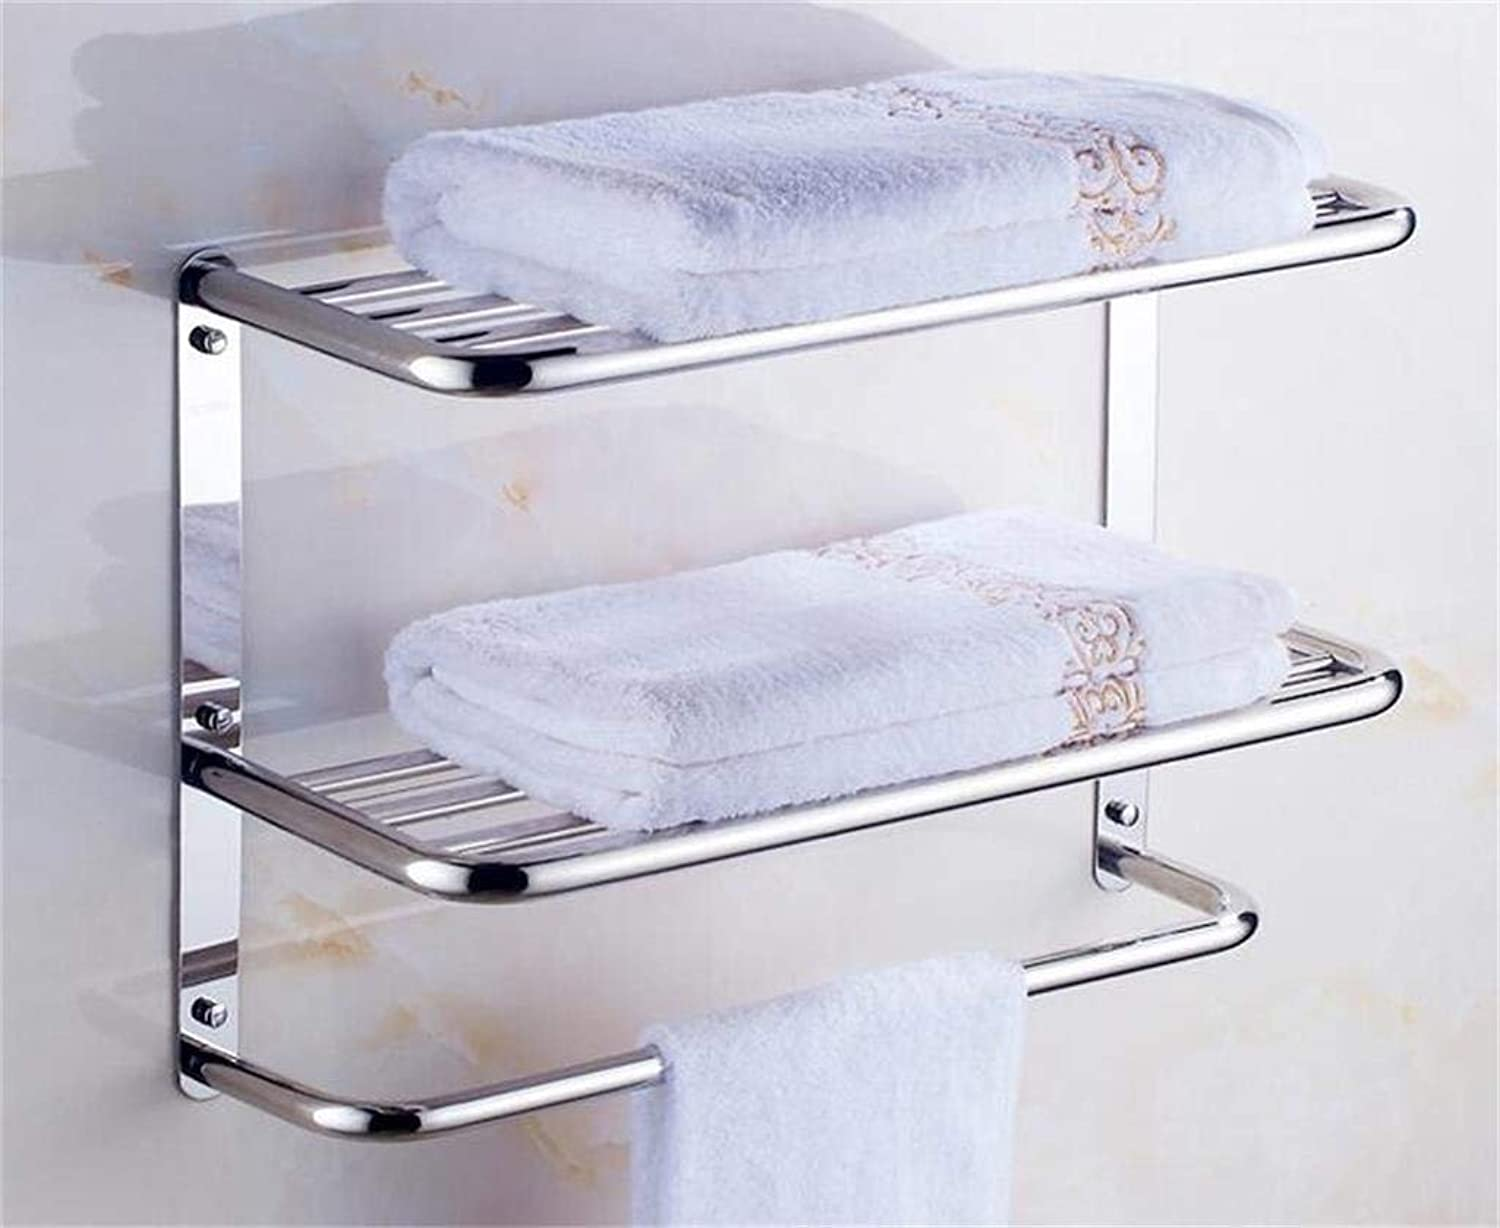 EQEQ Stainless Steel Shelving in Bathroom Bathroom Storage Rack Shelf Propeller Embedded Bathroom (color  7 (C 37 cm).